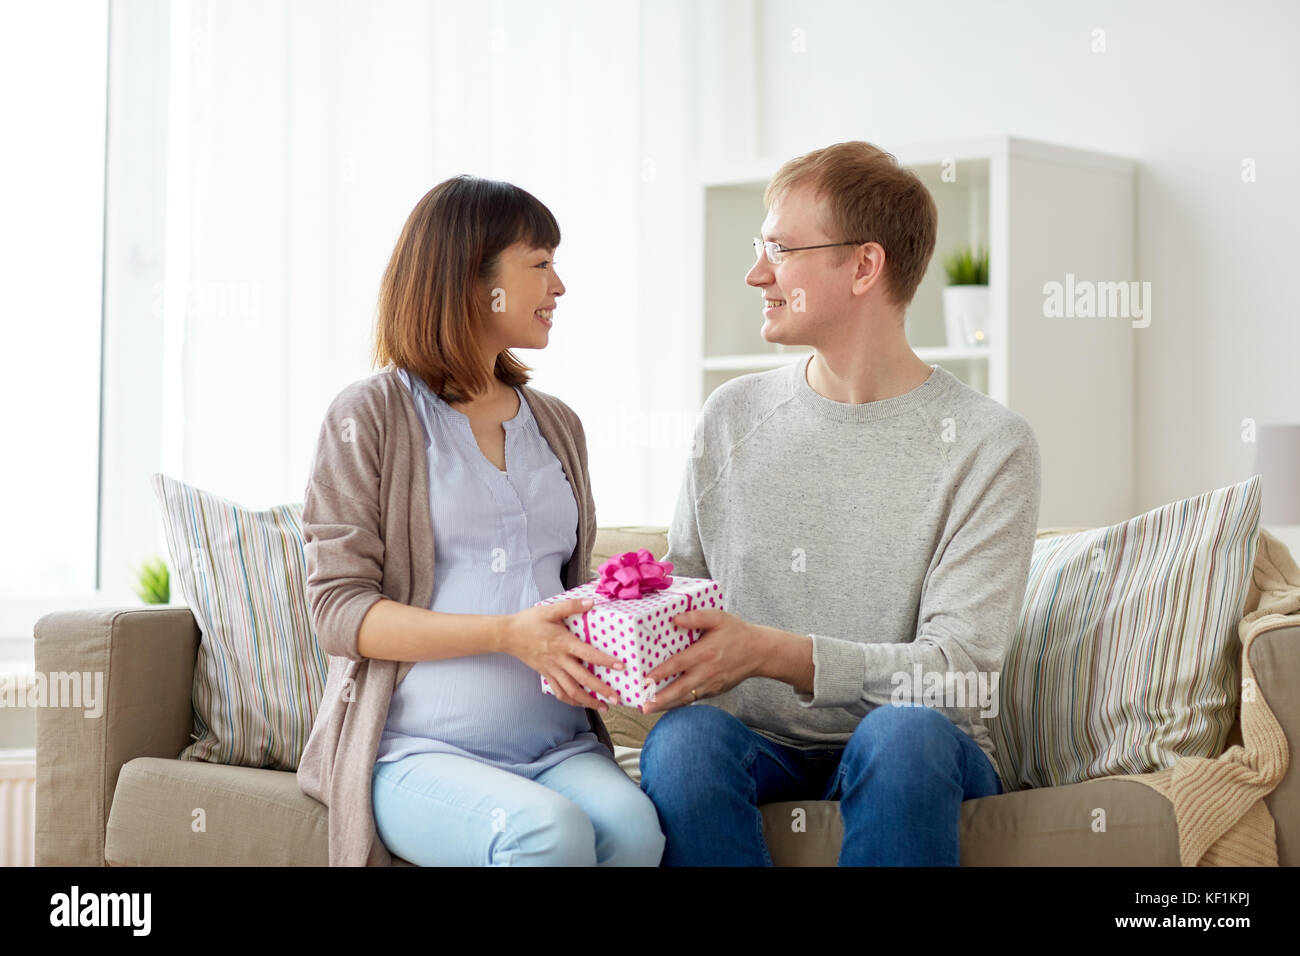 Husband Giving Birthday Present To Pregnant Wife Stock Photo